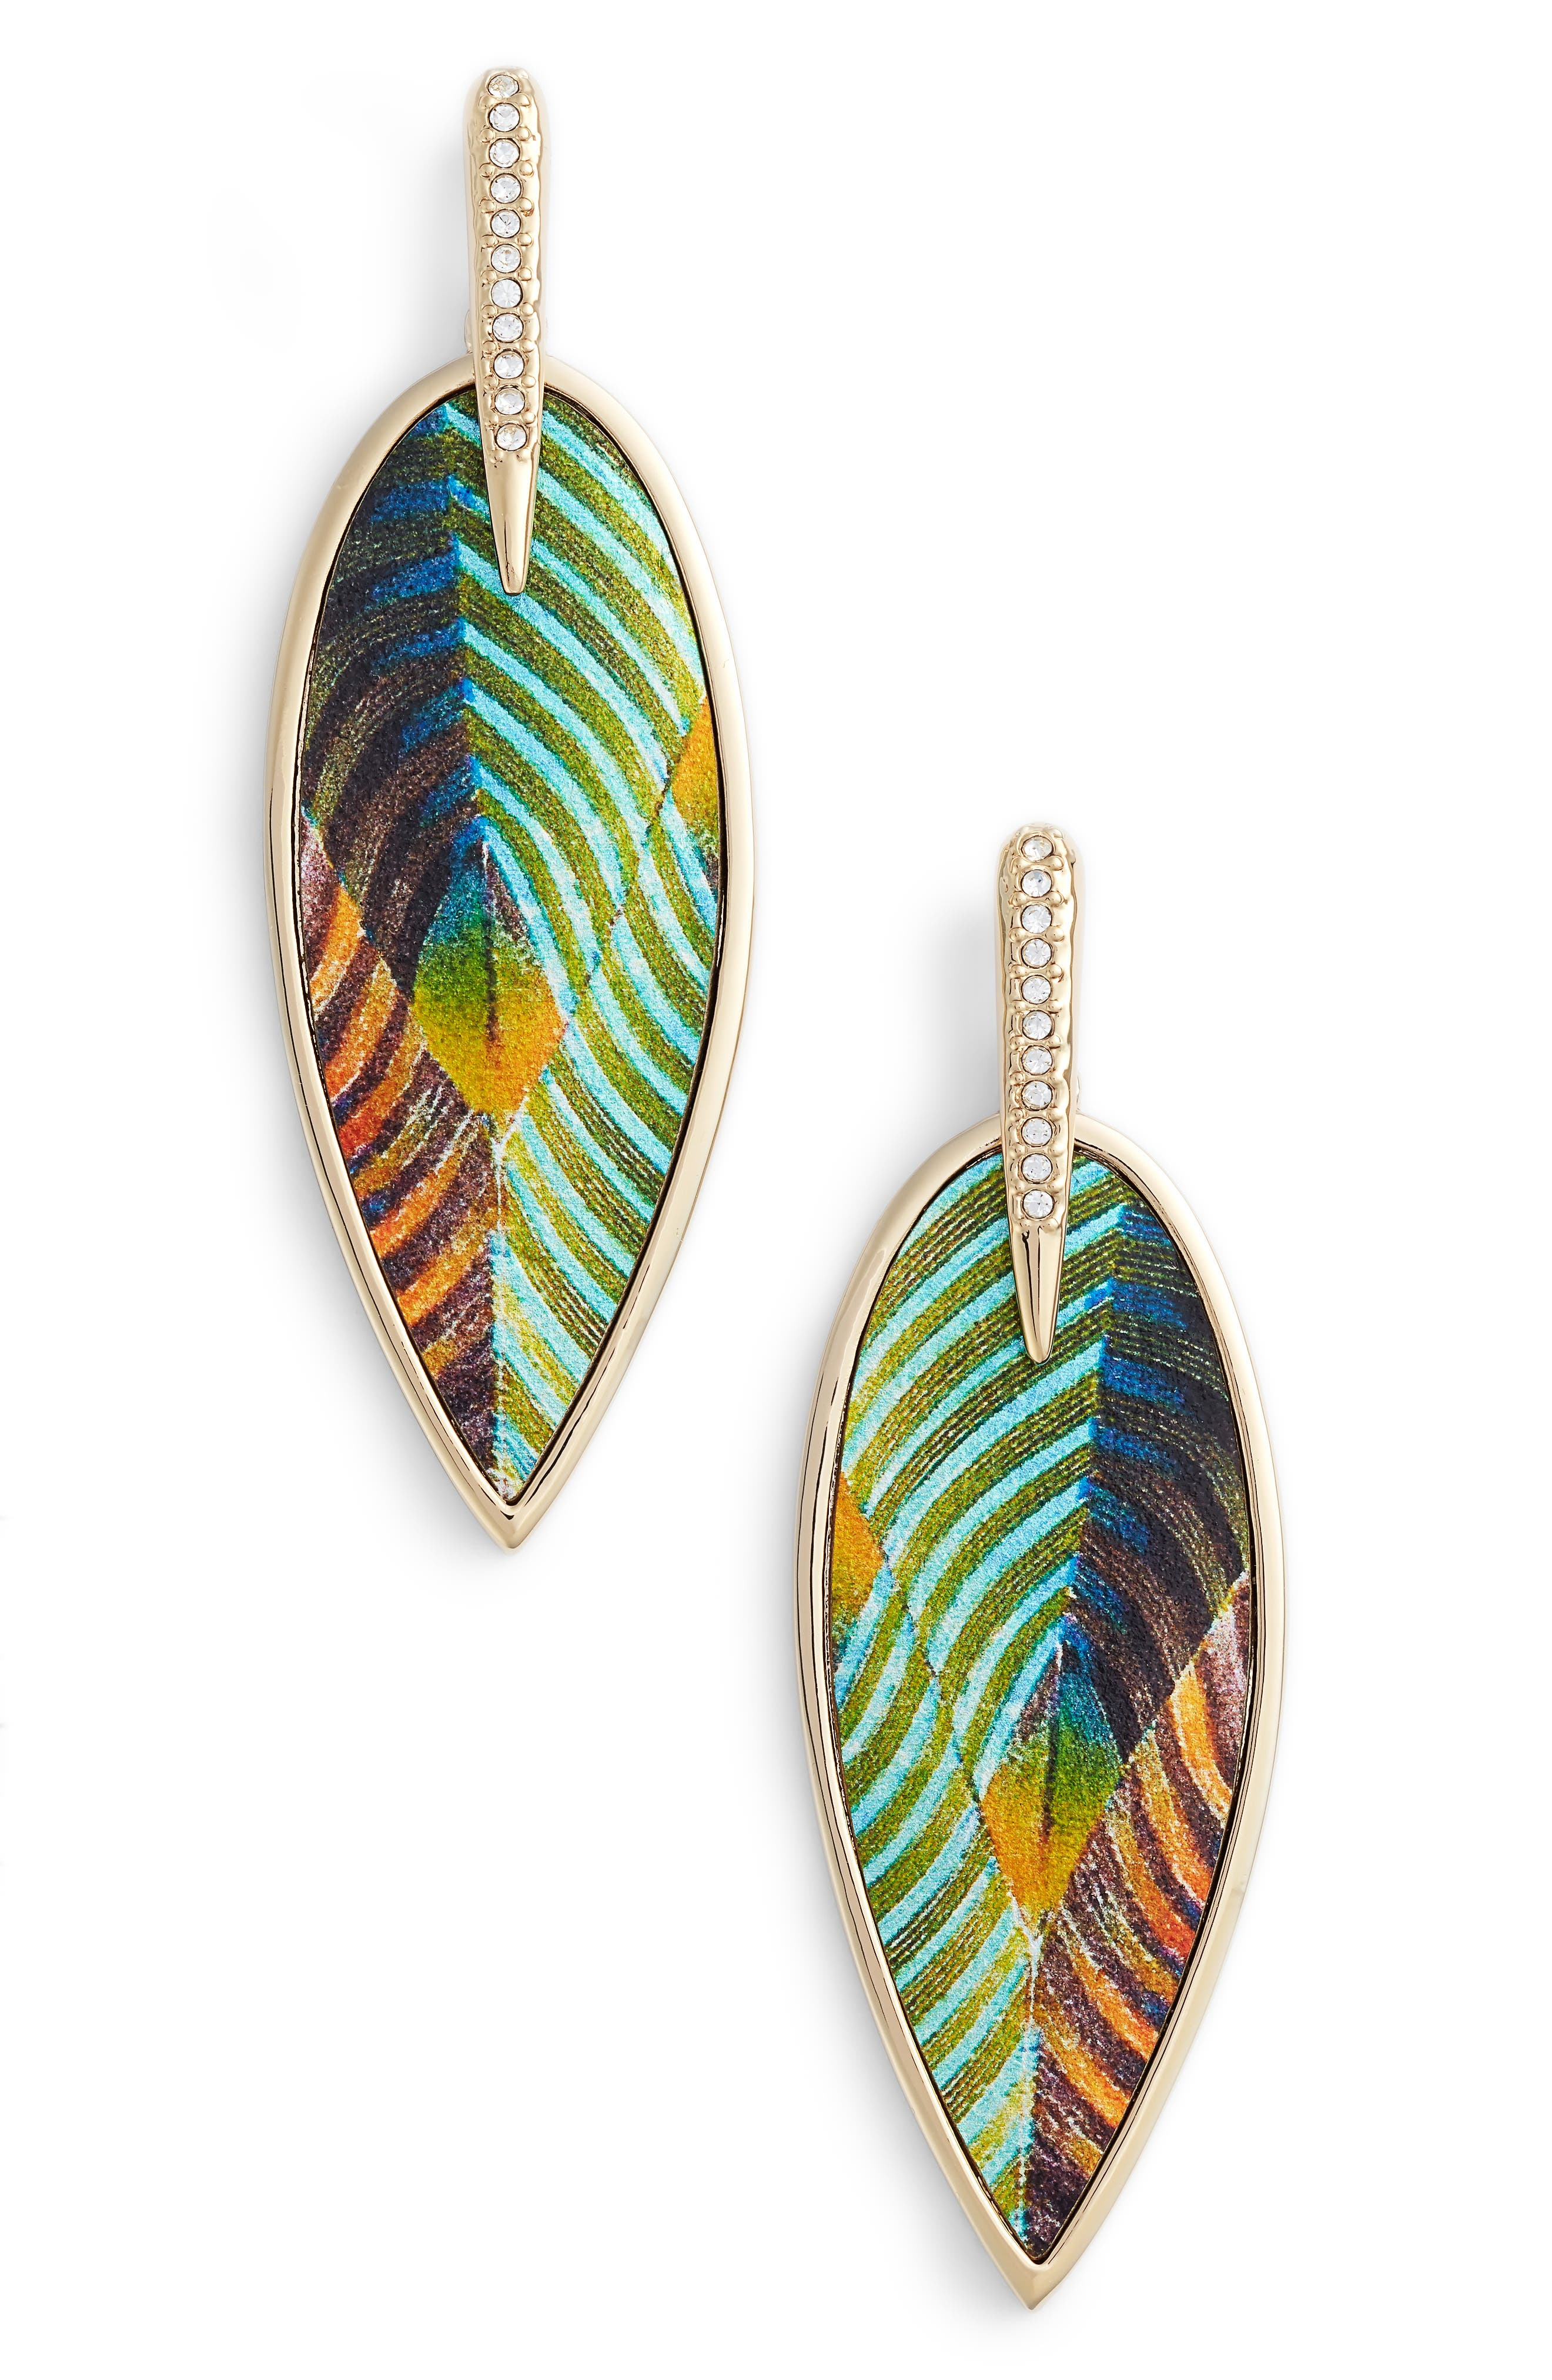 Vince Camuto Inlaid Leather Statement Earrings